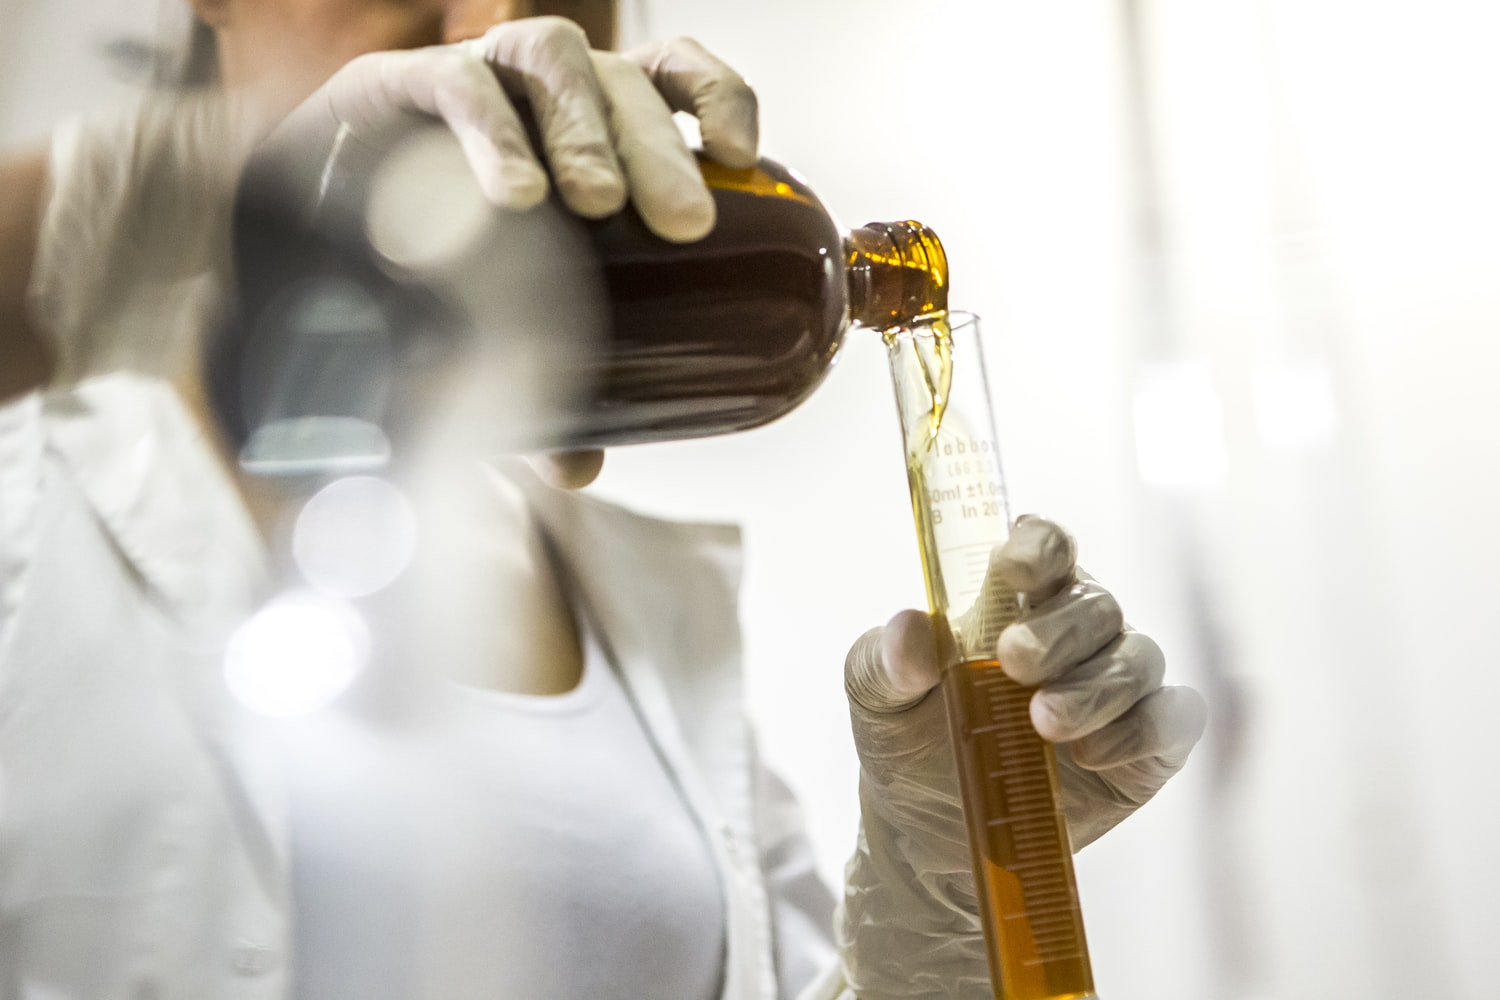 How Environmental Marketing Services Can Assist Your Laboratory With Chemical Waste Disposal